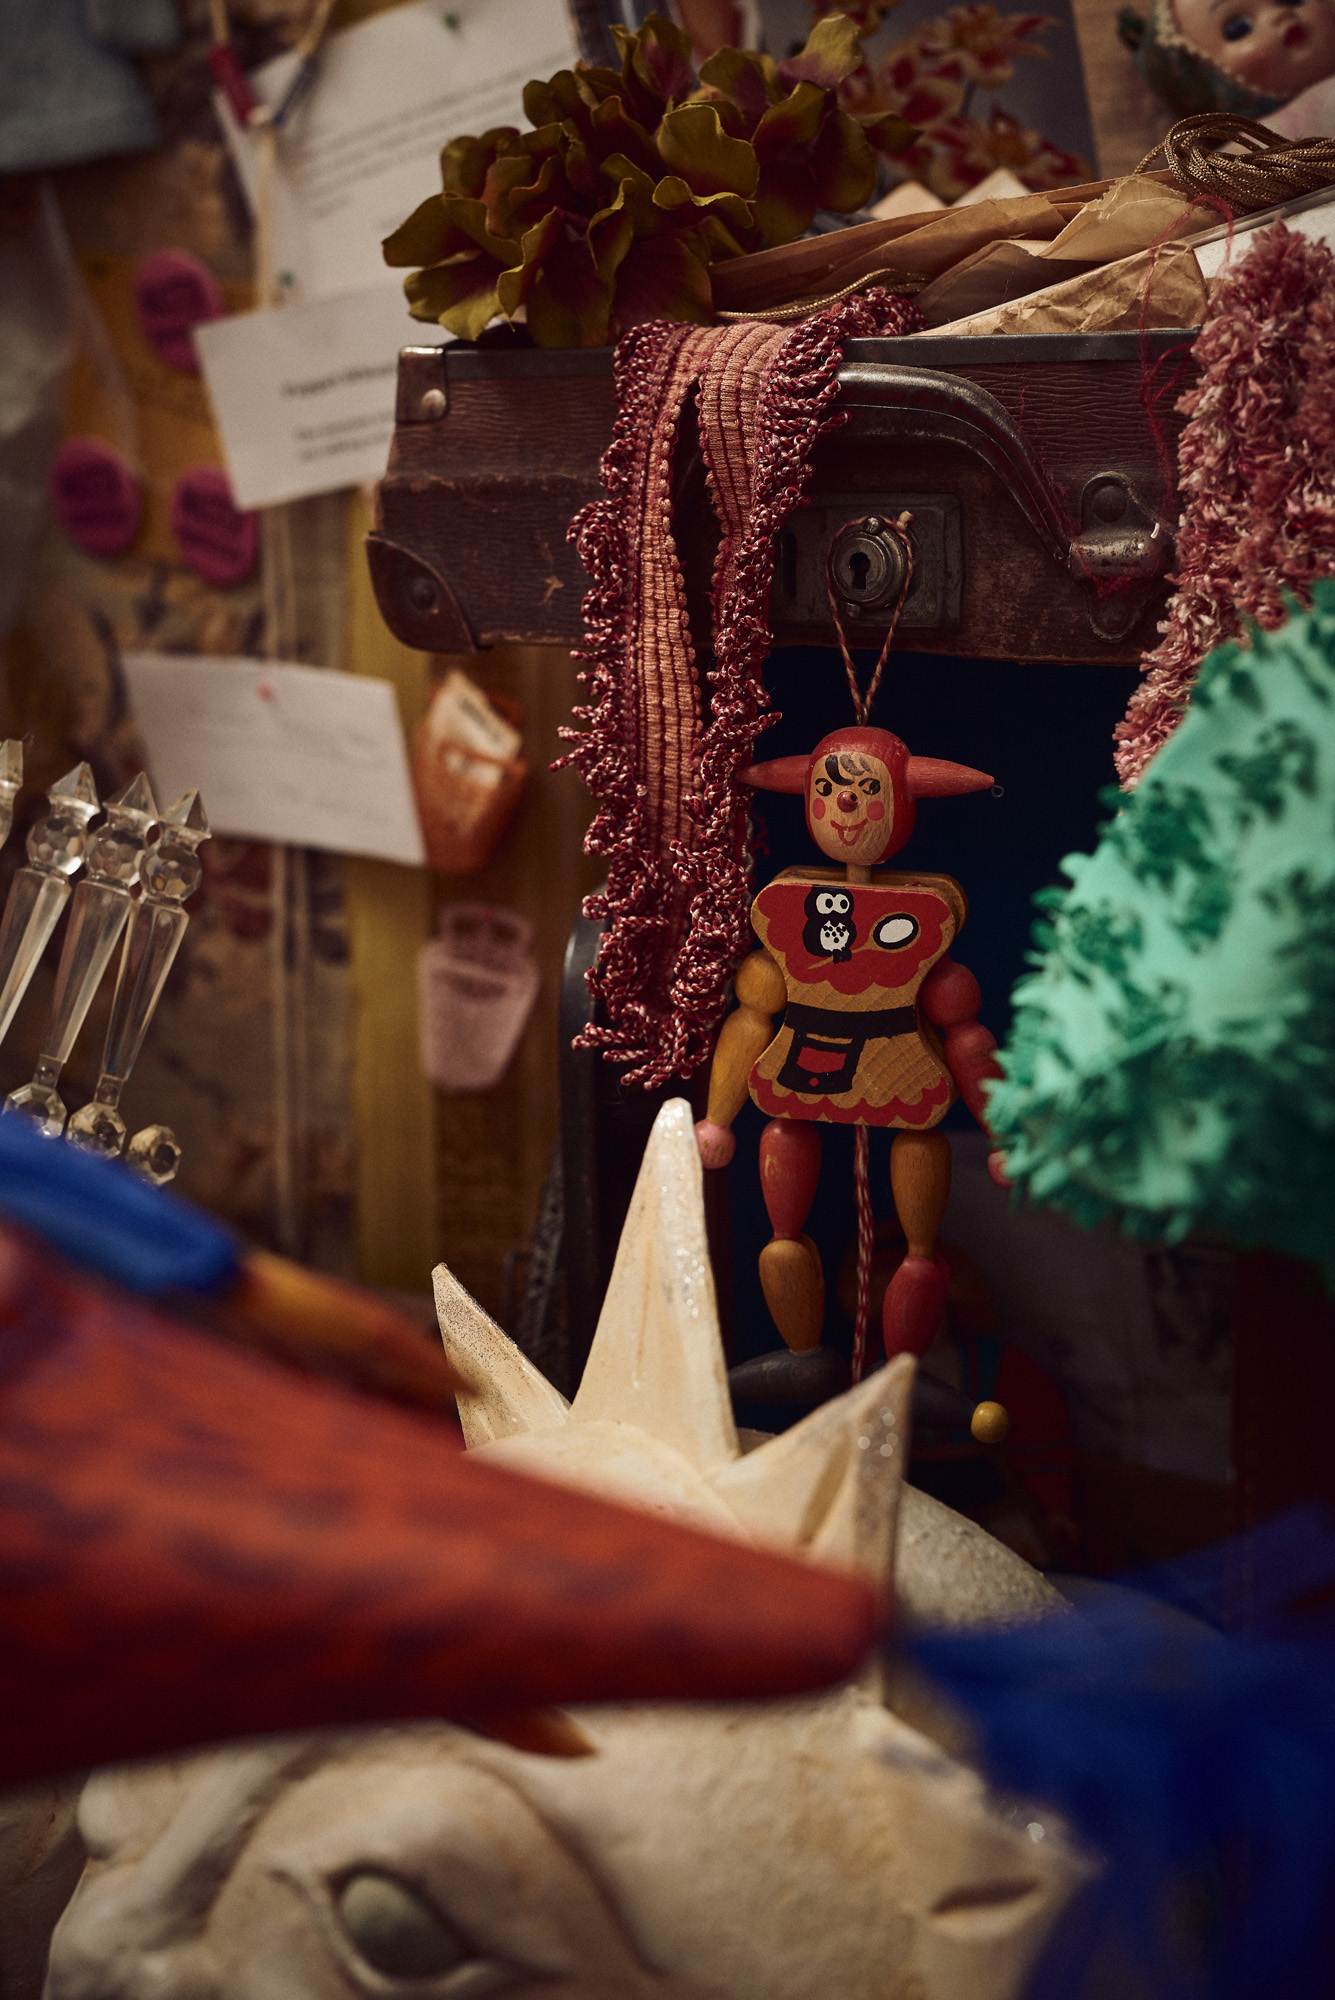 Detail from the studio of a puppeteer